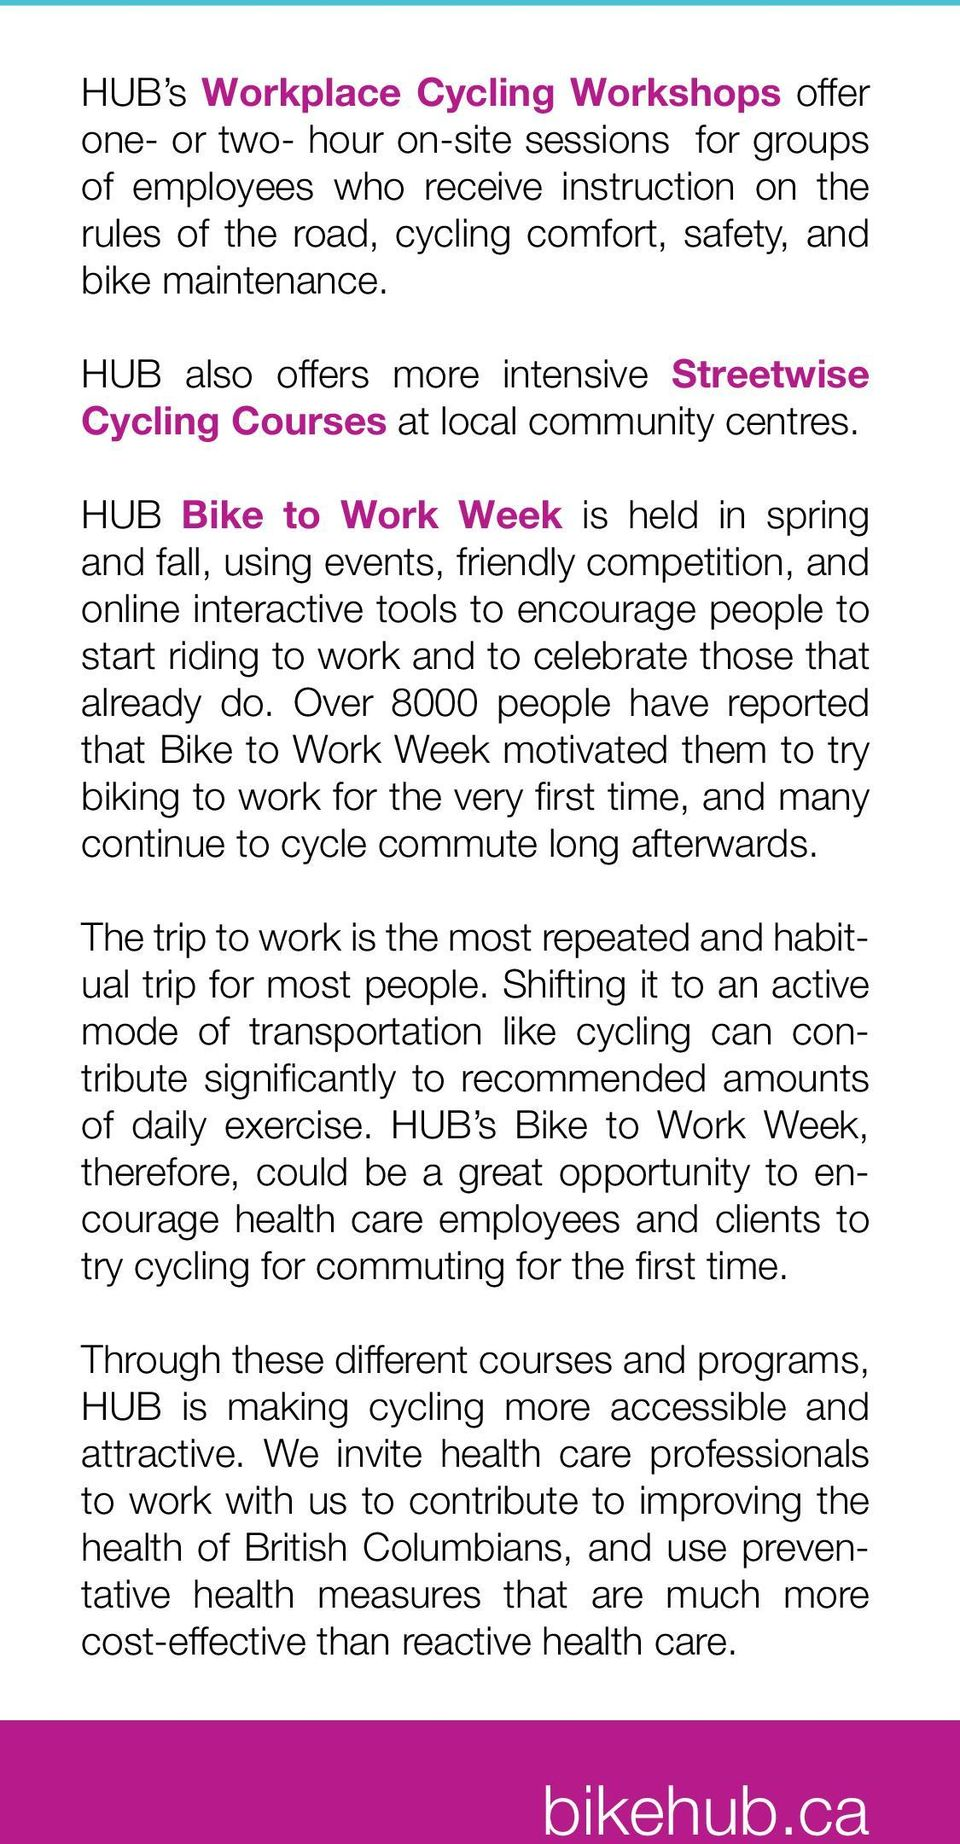 HUB Bike to Work Week is held in spring and fall, using events, friendly competition, and online interactive tools to encourage people to start riding to work and to celebrate those that already do.